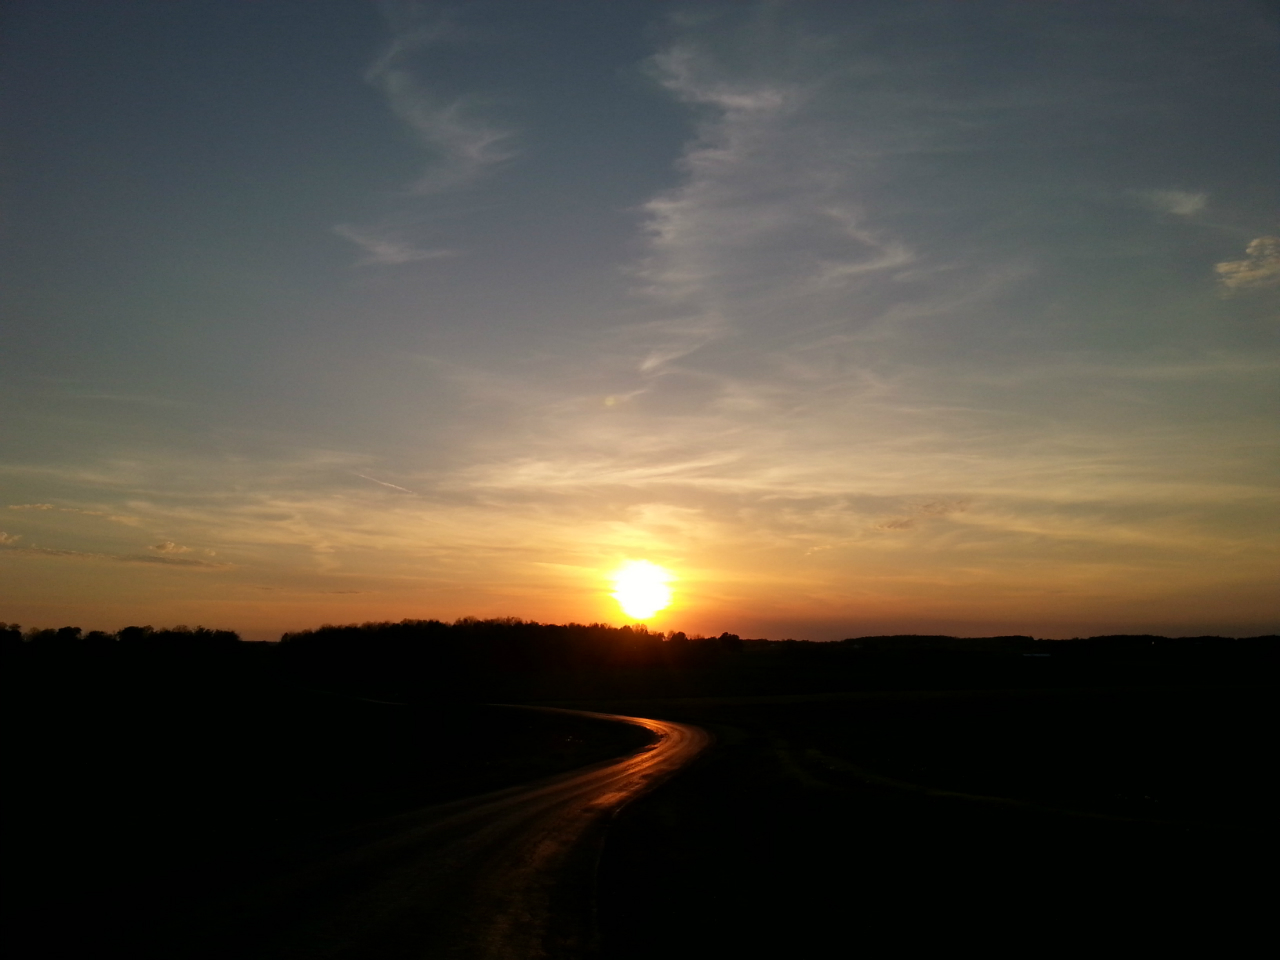 Sunset on a country road (photo)